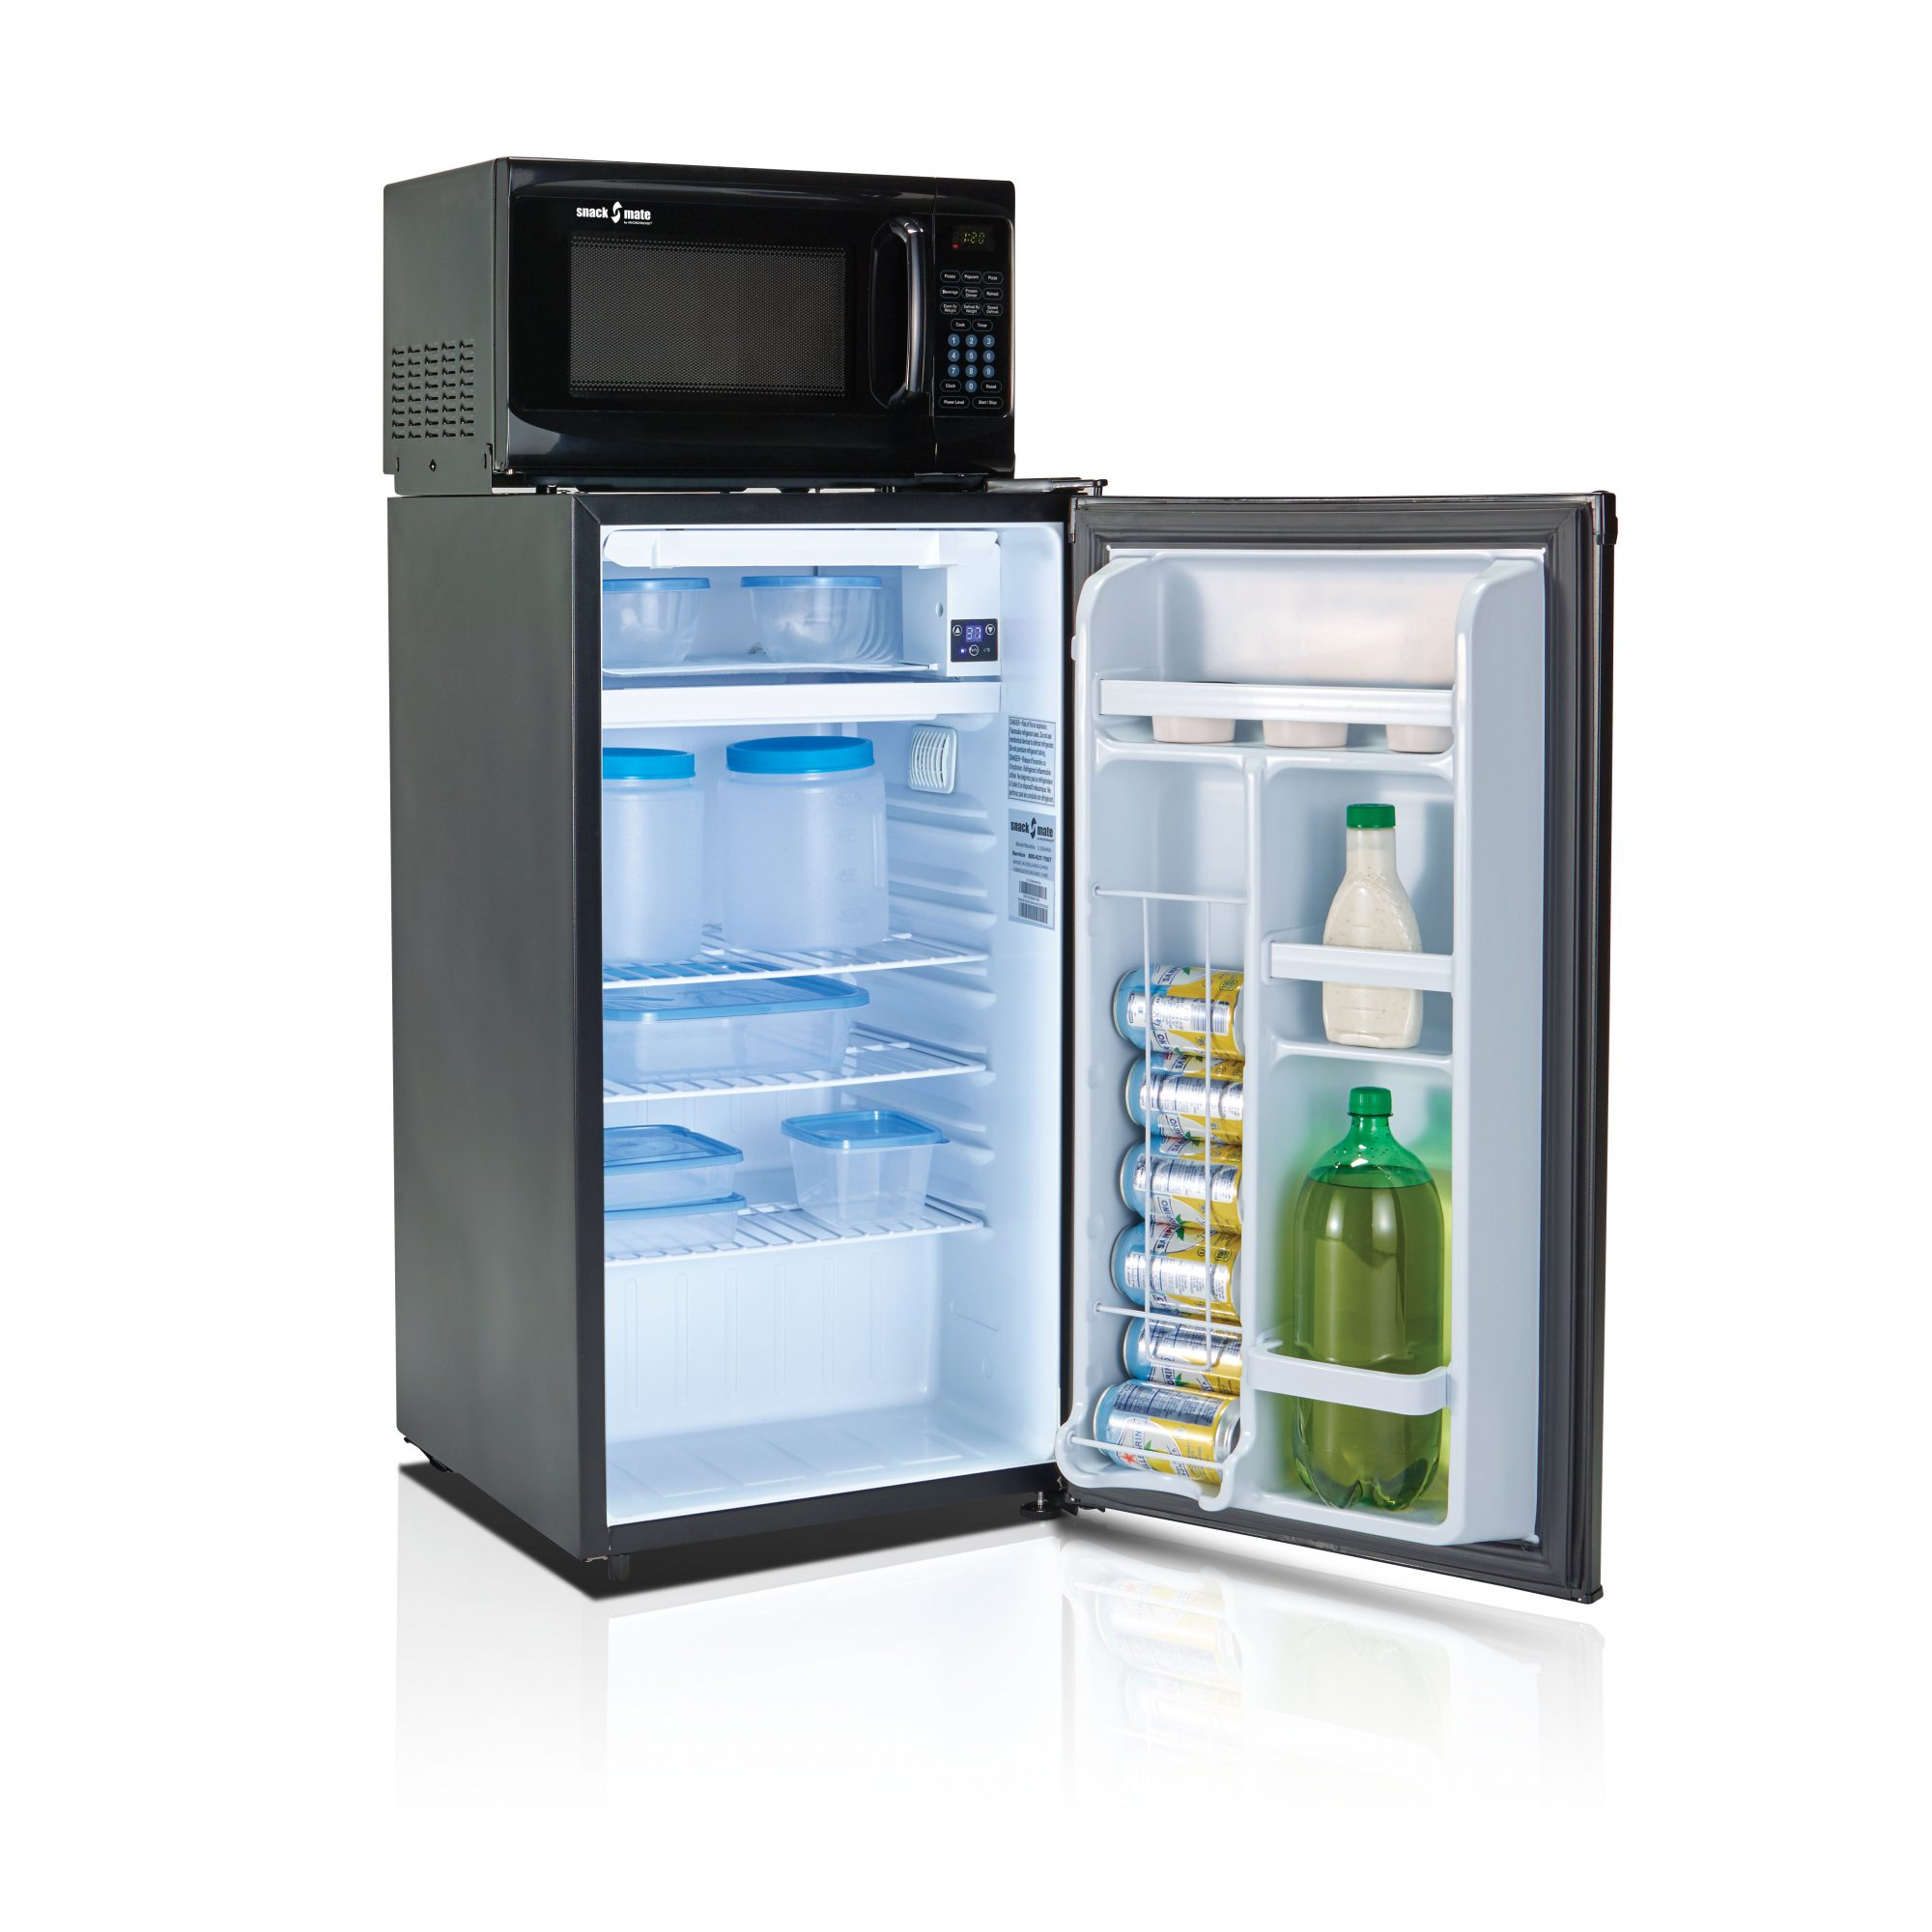 Snackmate Combination Mini Refrigerator and Microwave